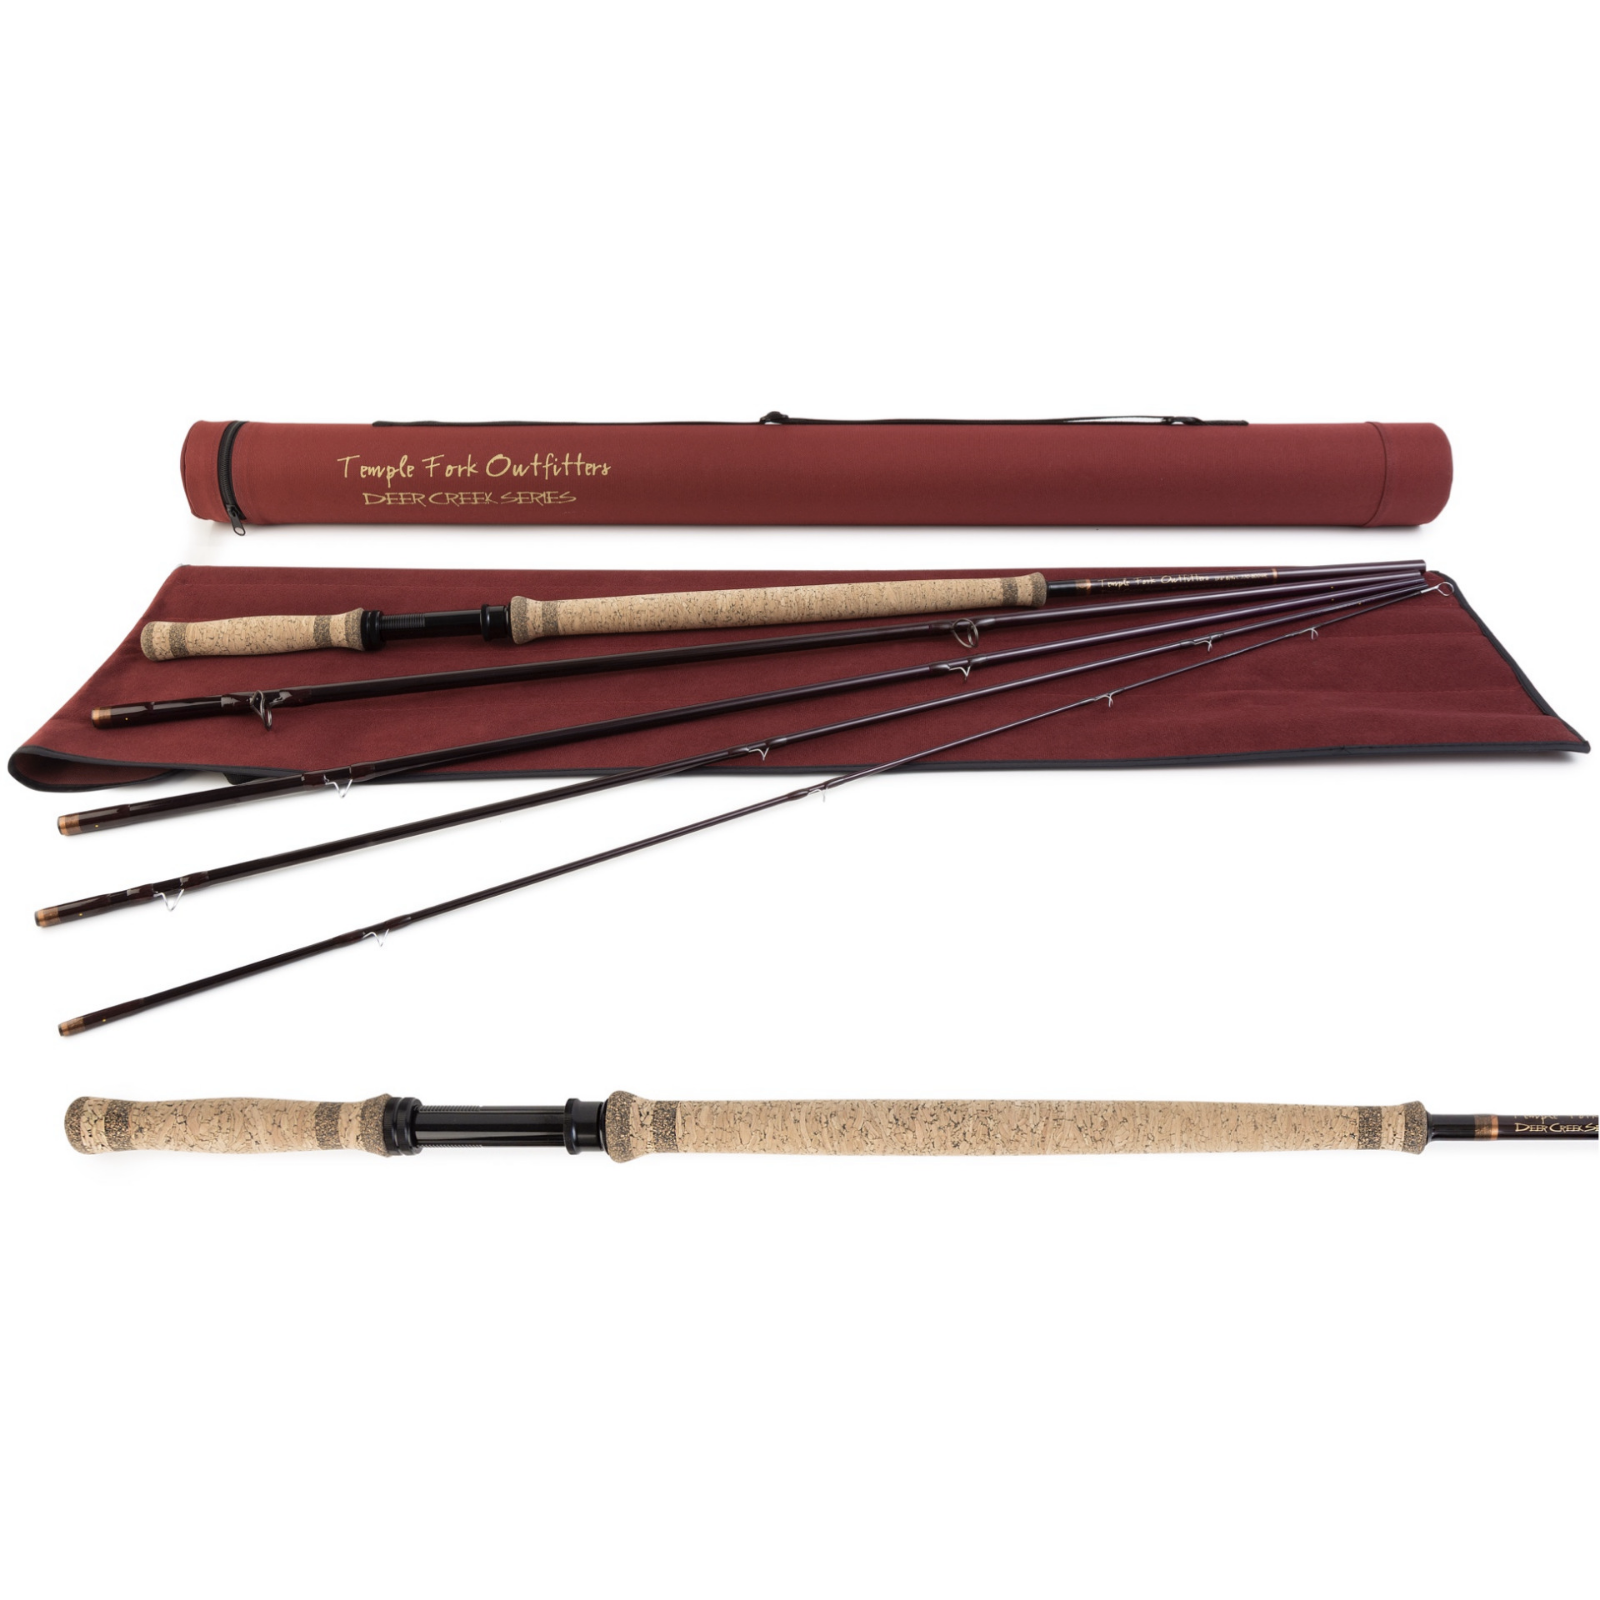 Temple Fork Outfitters 13' Deer Creek Spey Rod wCase  5Piece, 67wt, Medium